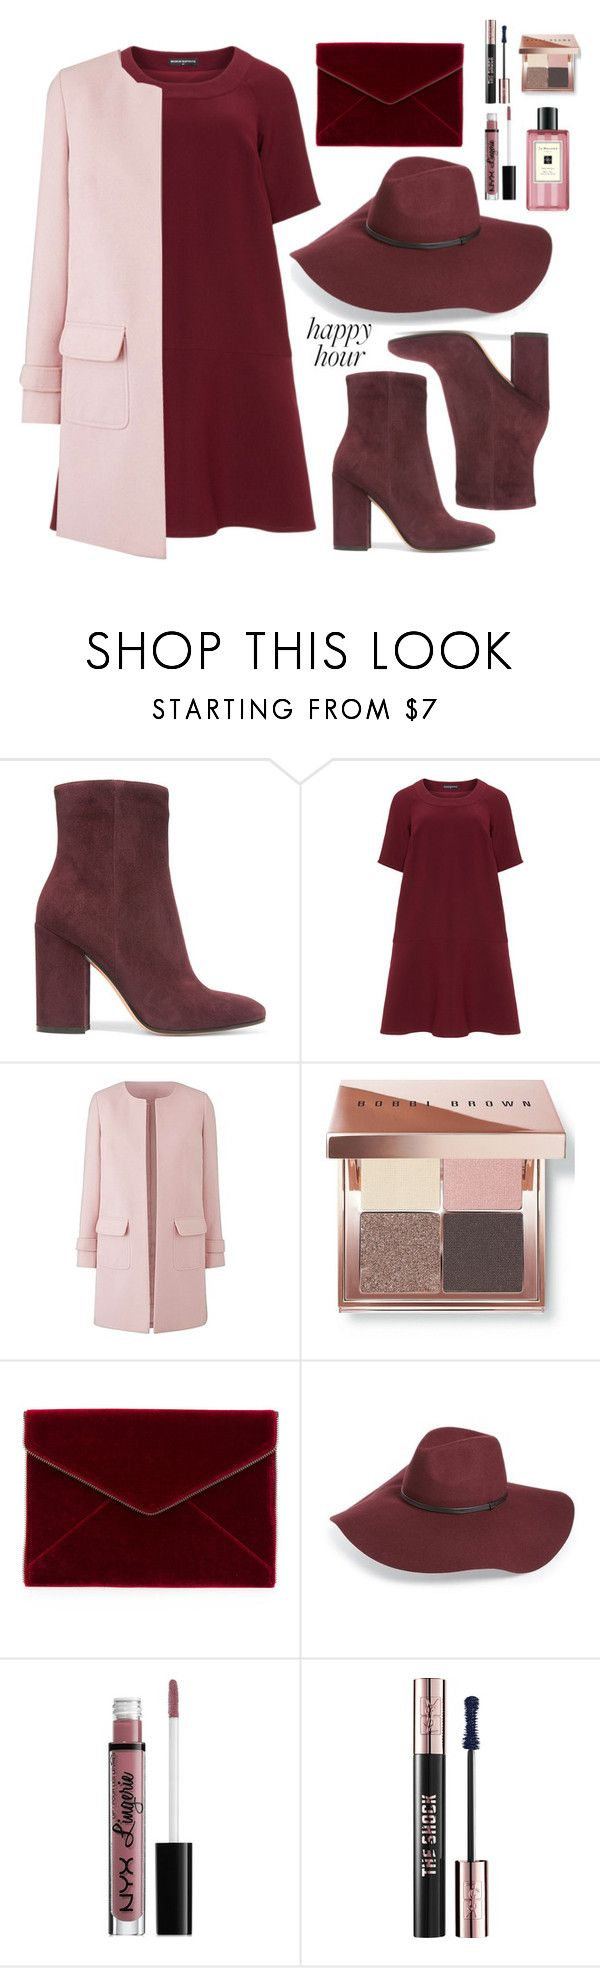 """""""#104"""" by lenabitkina ❤ liked on Polyvore featuring Gianvito Rossi, Manon Baptiste, Bobbi Brown Cosmetics, Rebecca Minkoff, Halogen, NYX, Yves Saint Laurent, Jo Malone and happyhour"""